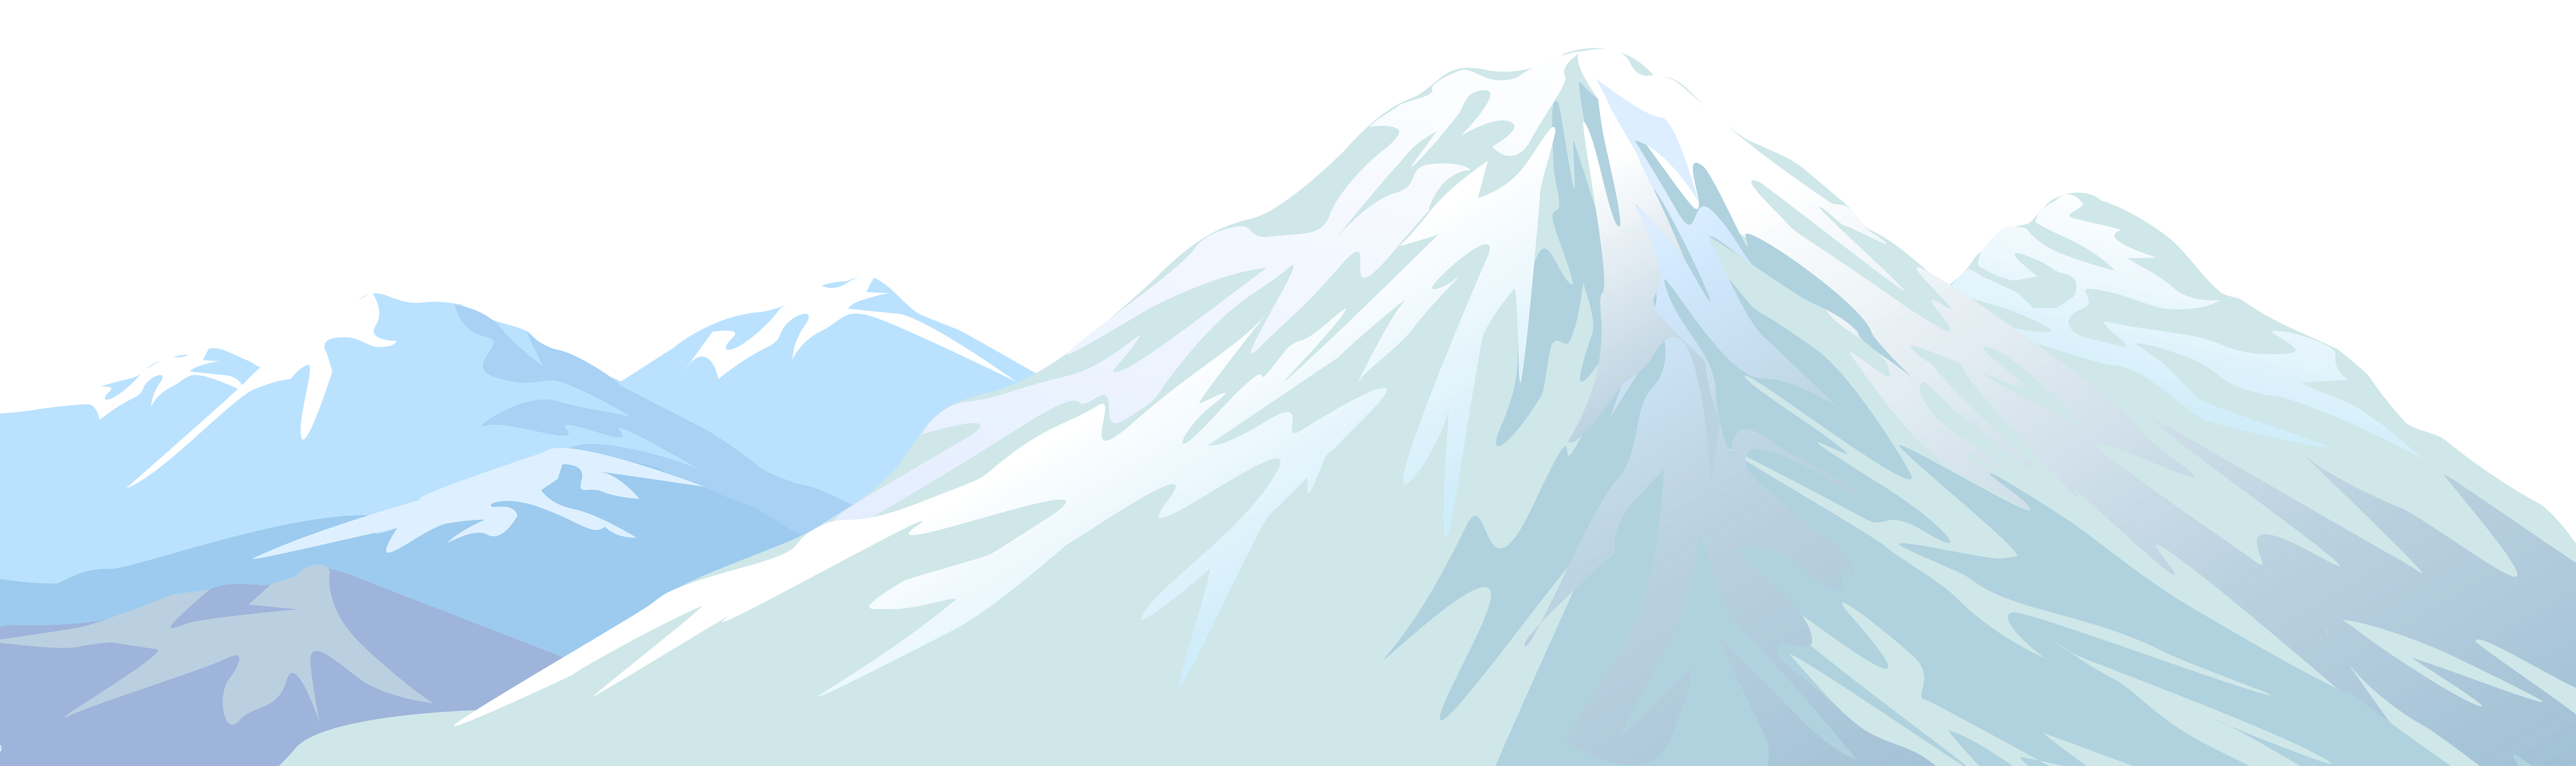 1625 Snowy free clipart.